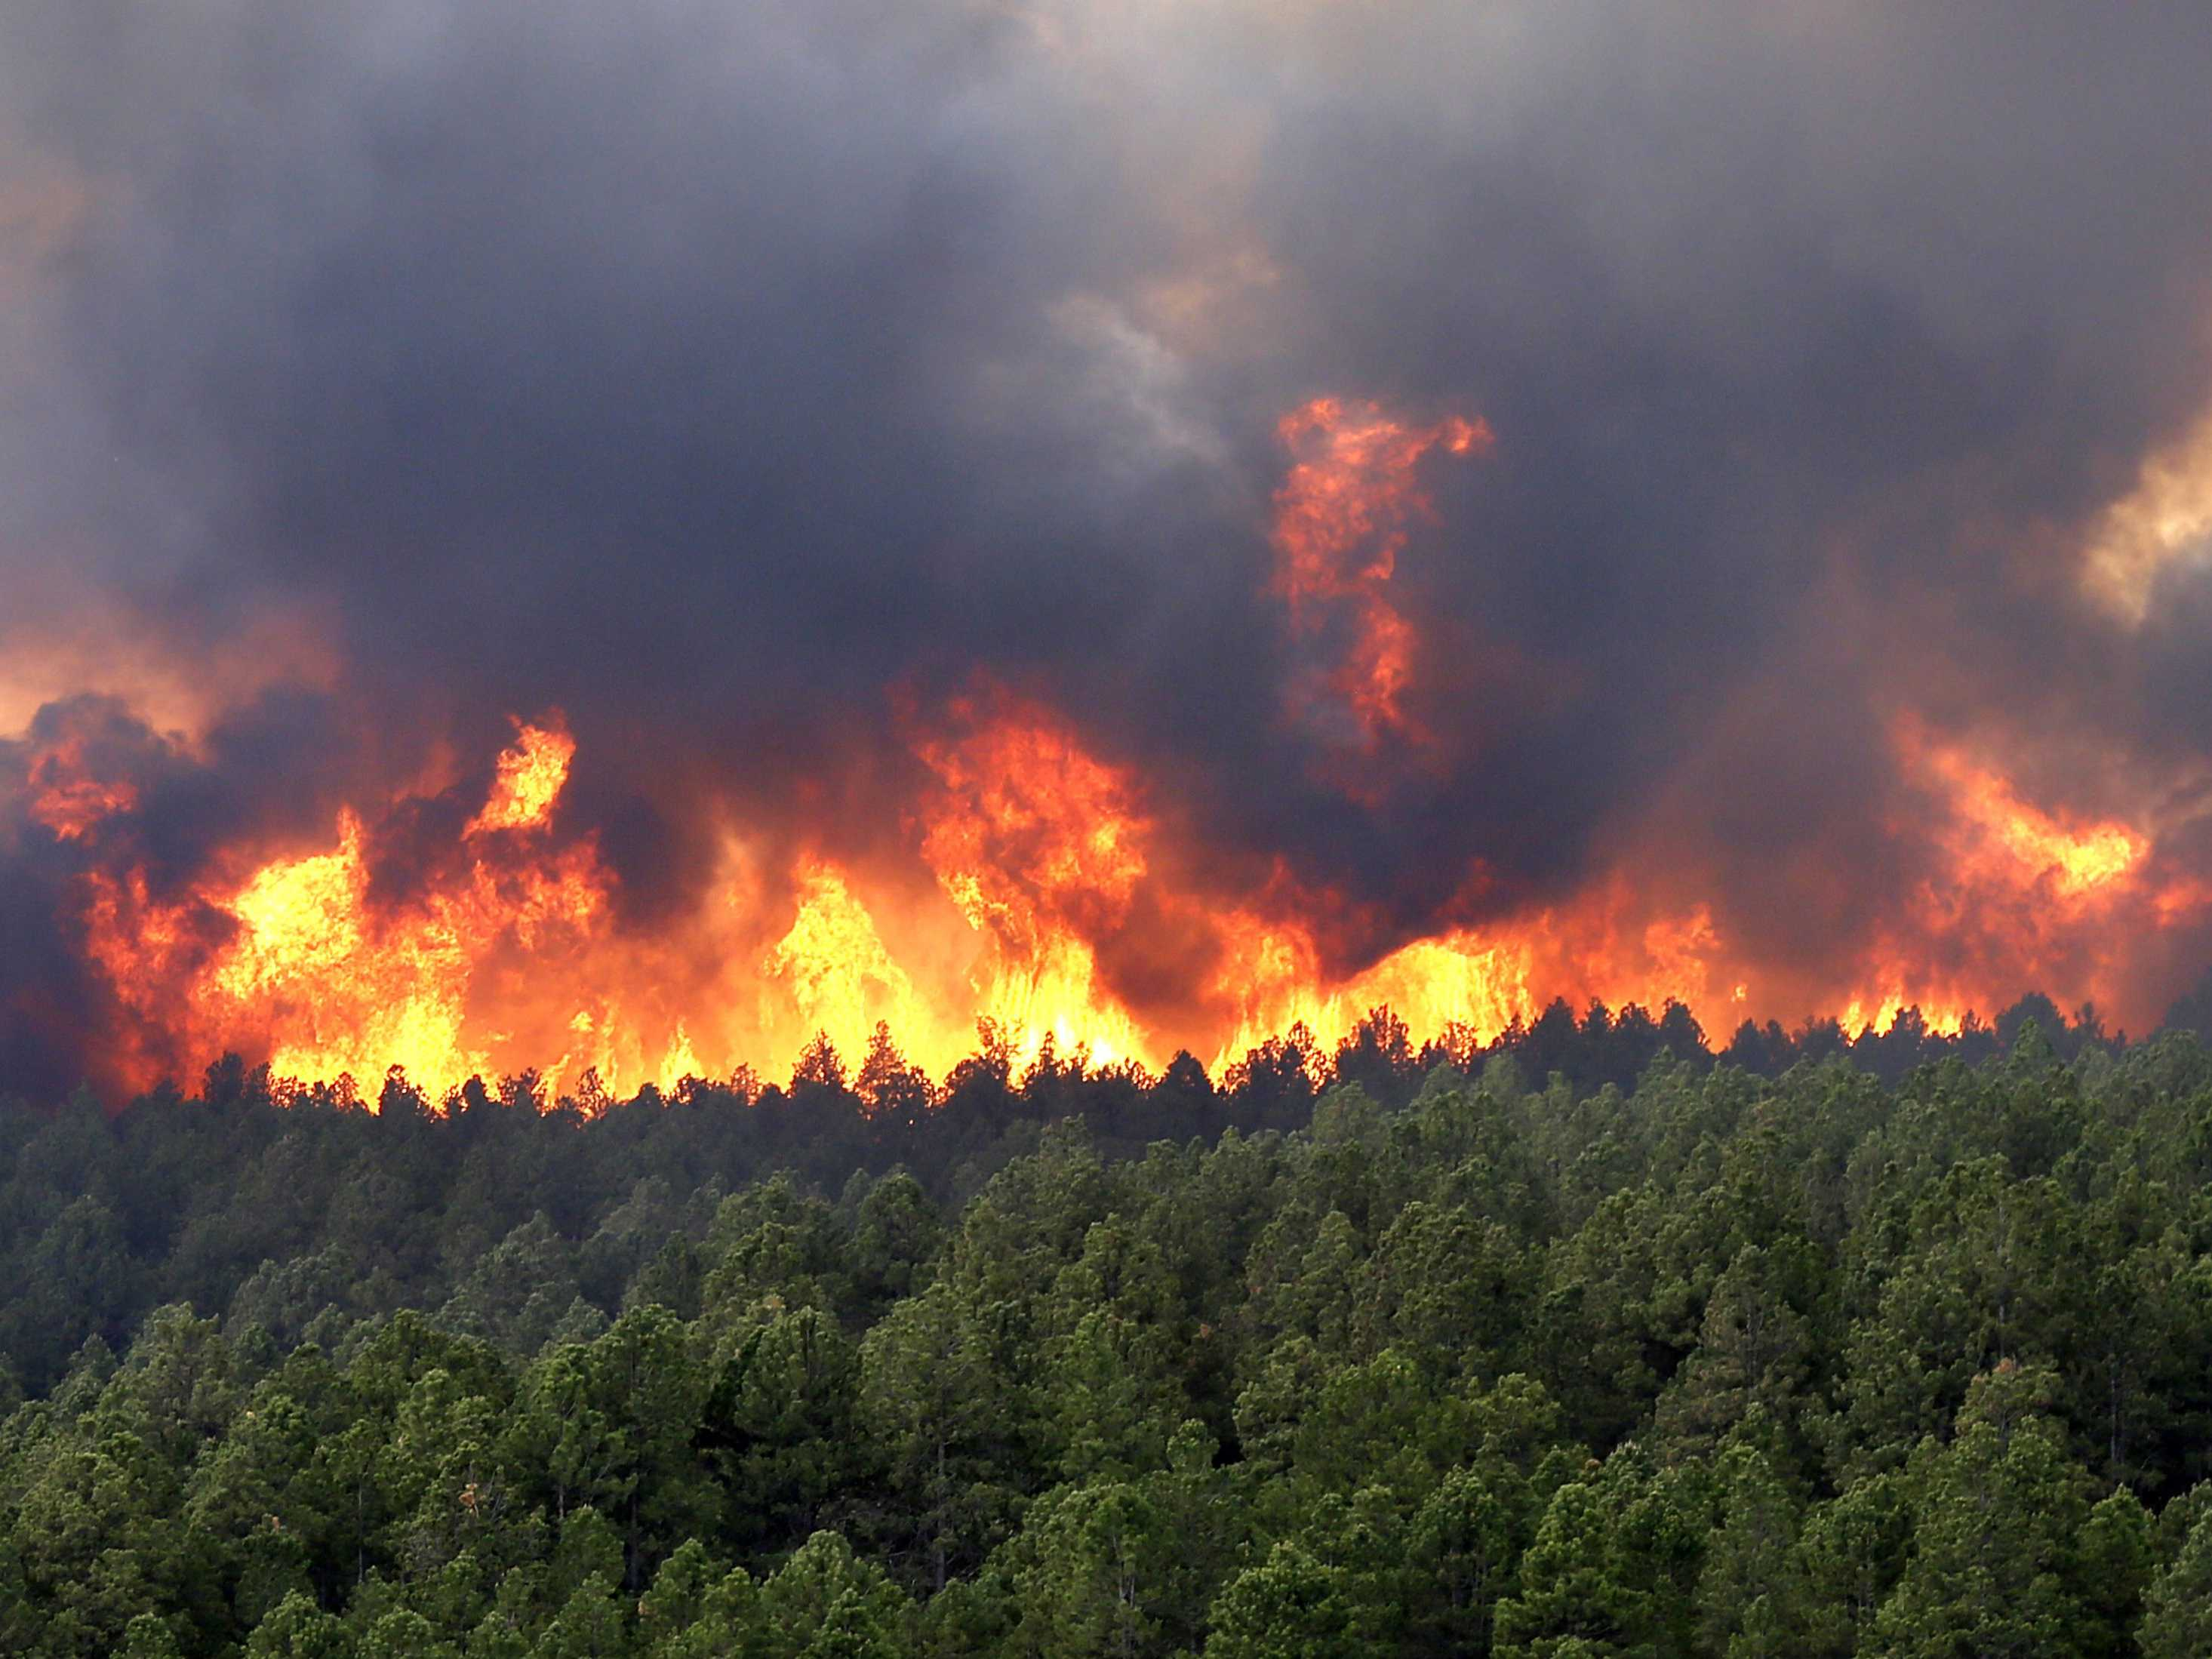 Image: Past fire control efforts have interfered with the natural ecosystem of forests, increasing the risk and intensity of wildfires